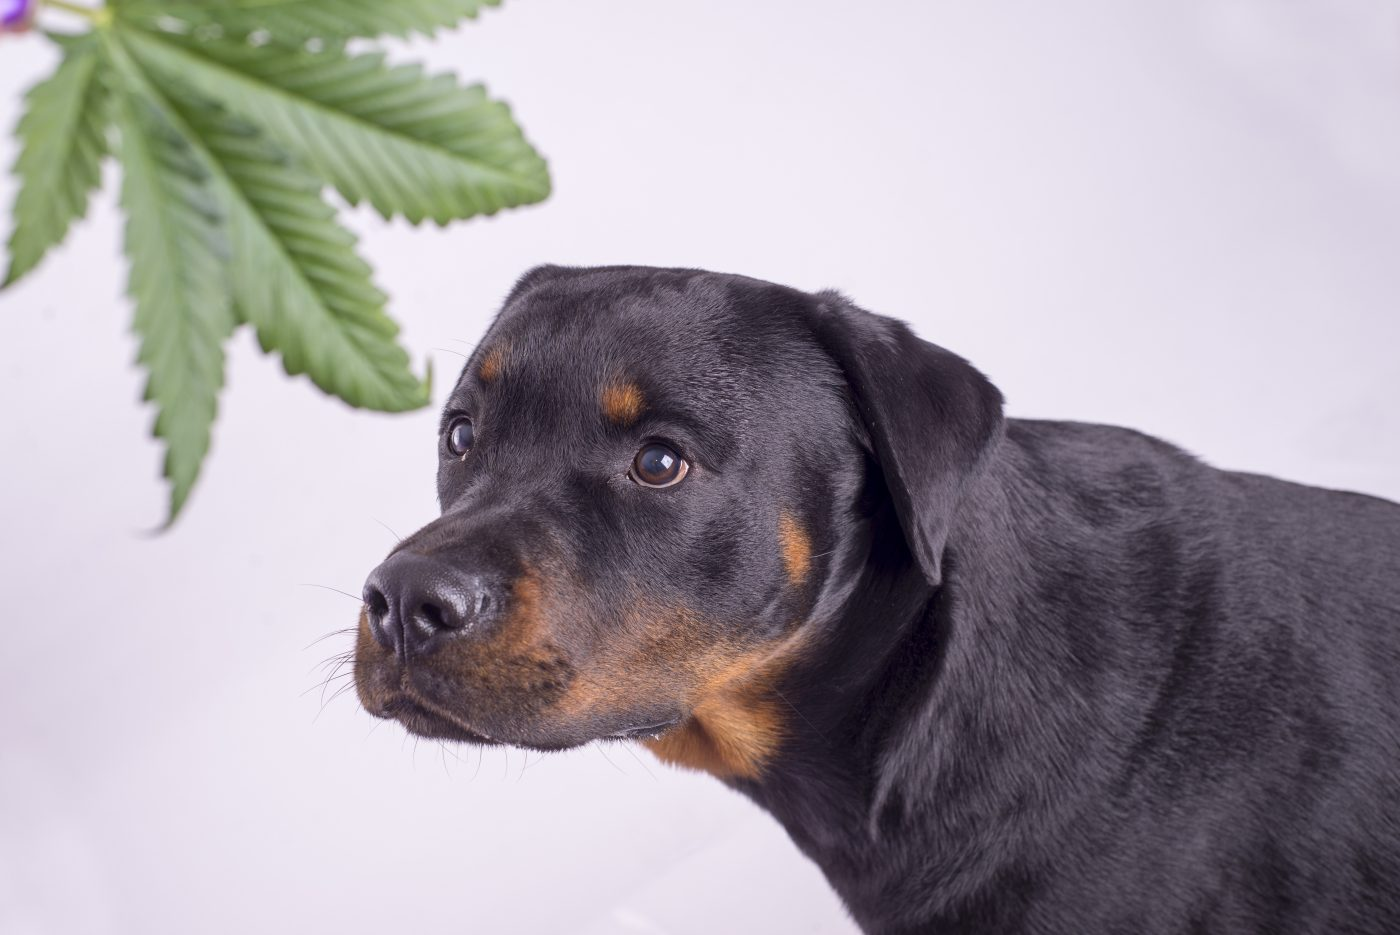 Veterinarians Seeing Many Types of Marijuana Exposure